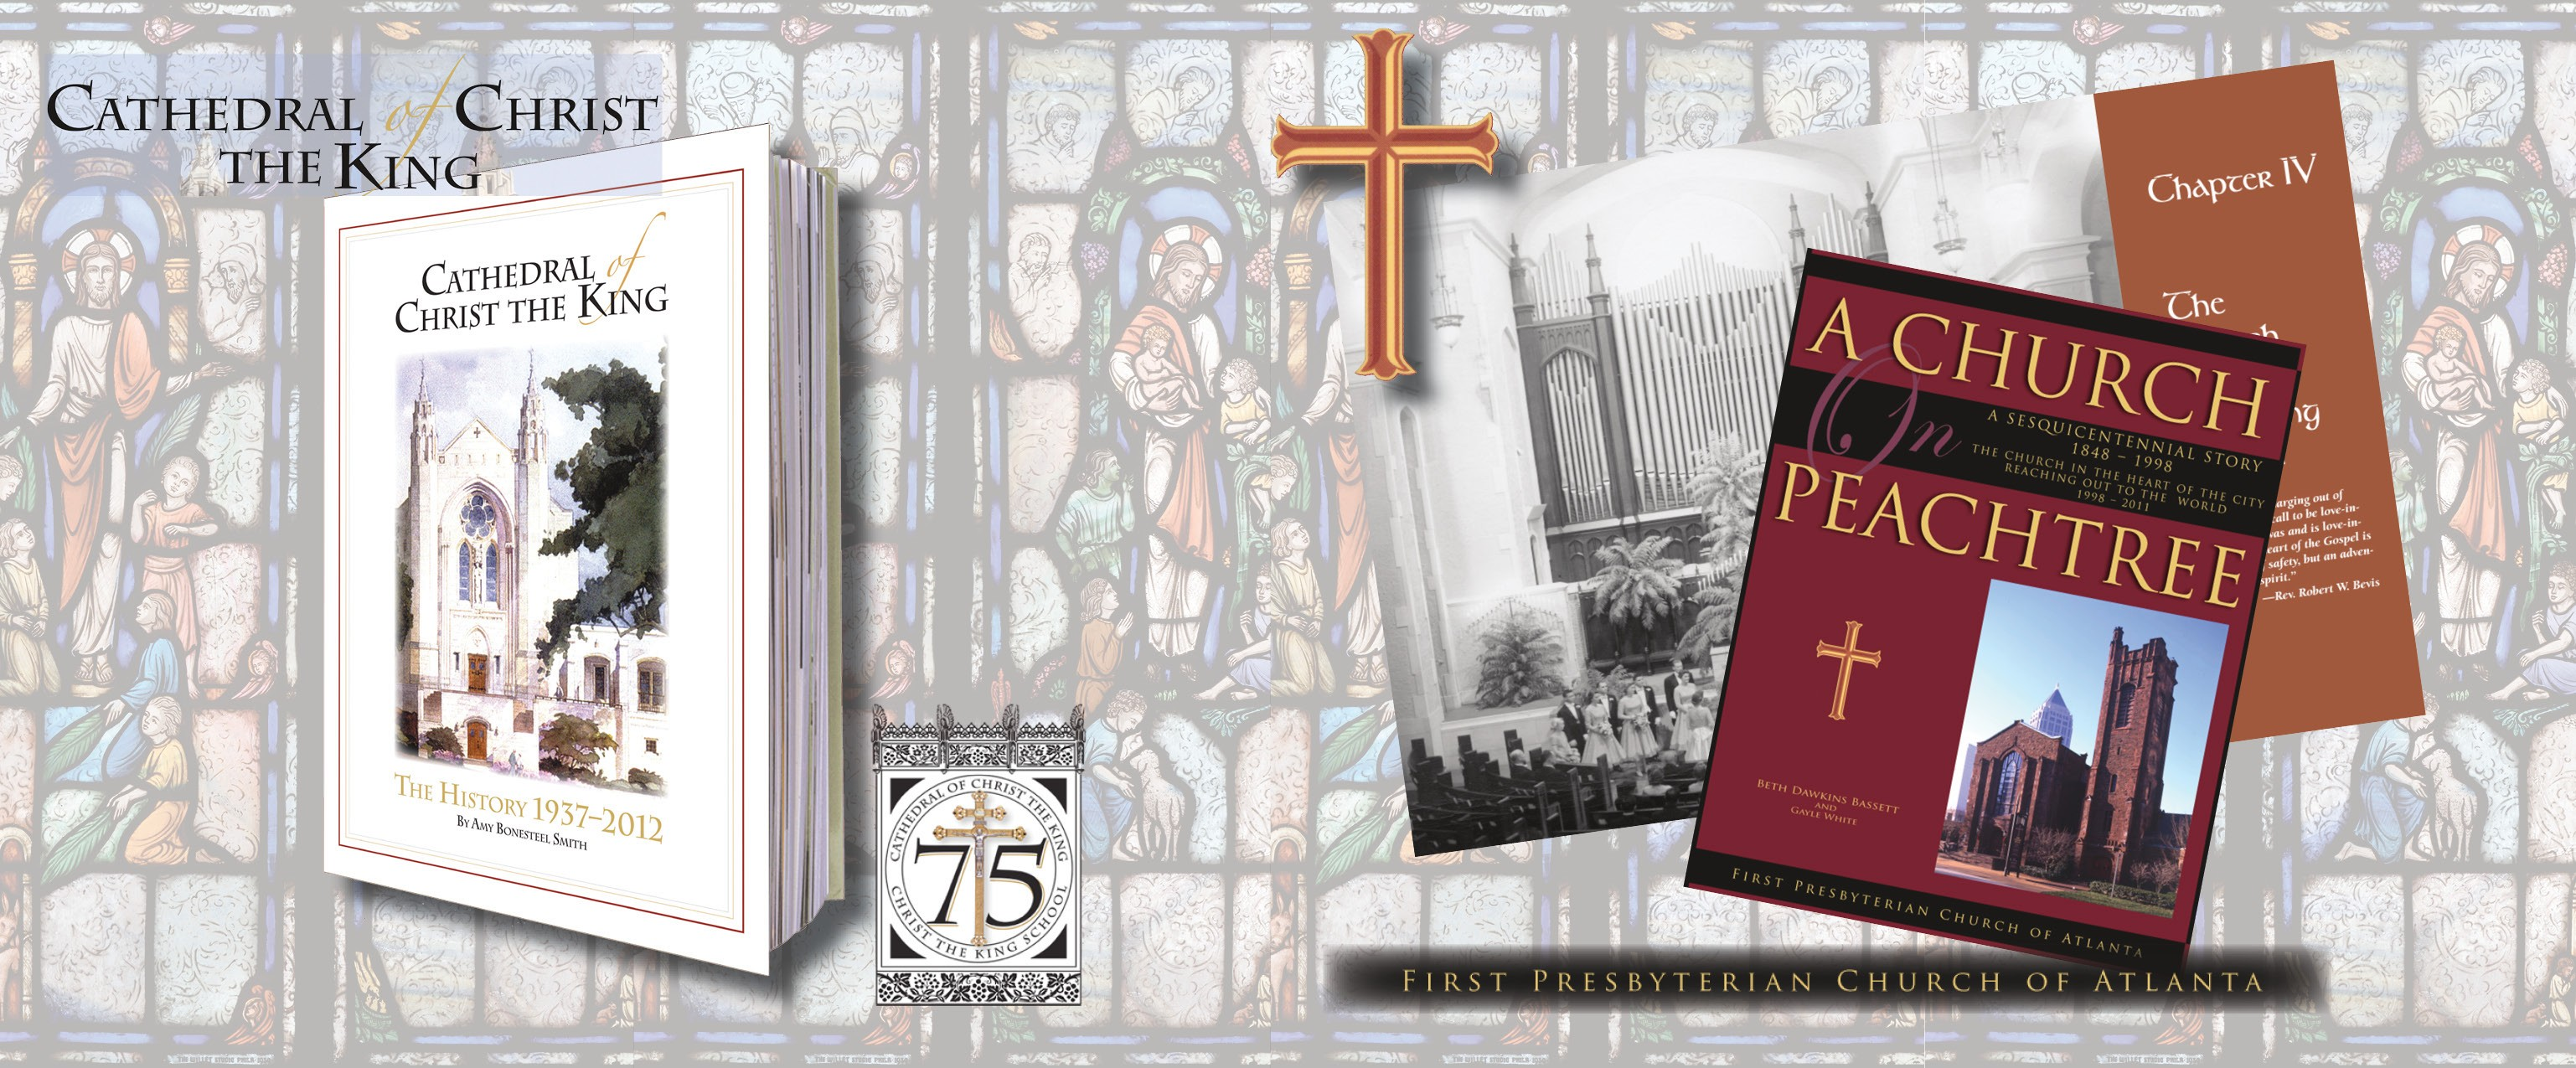 Bookhouse has developed commemorative books for The Cathedral of Christ the King and First Presbyterian Church of Atlanta